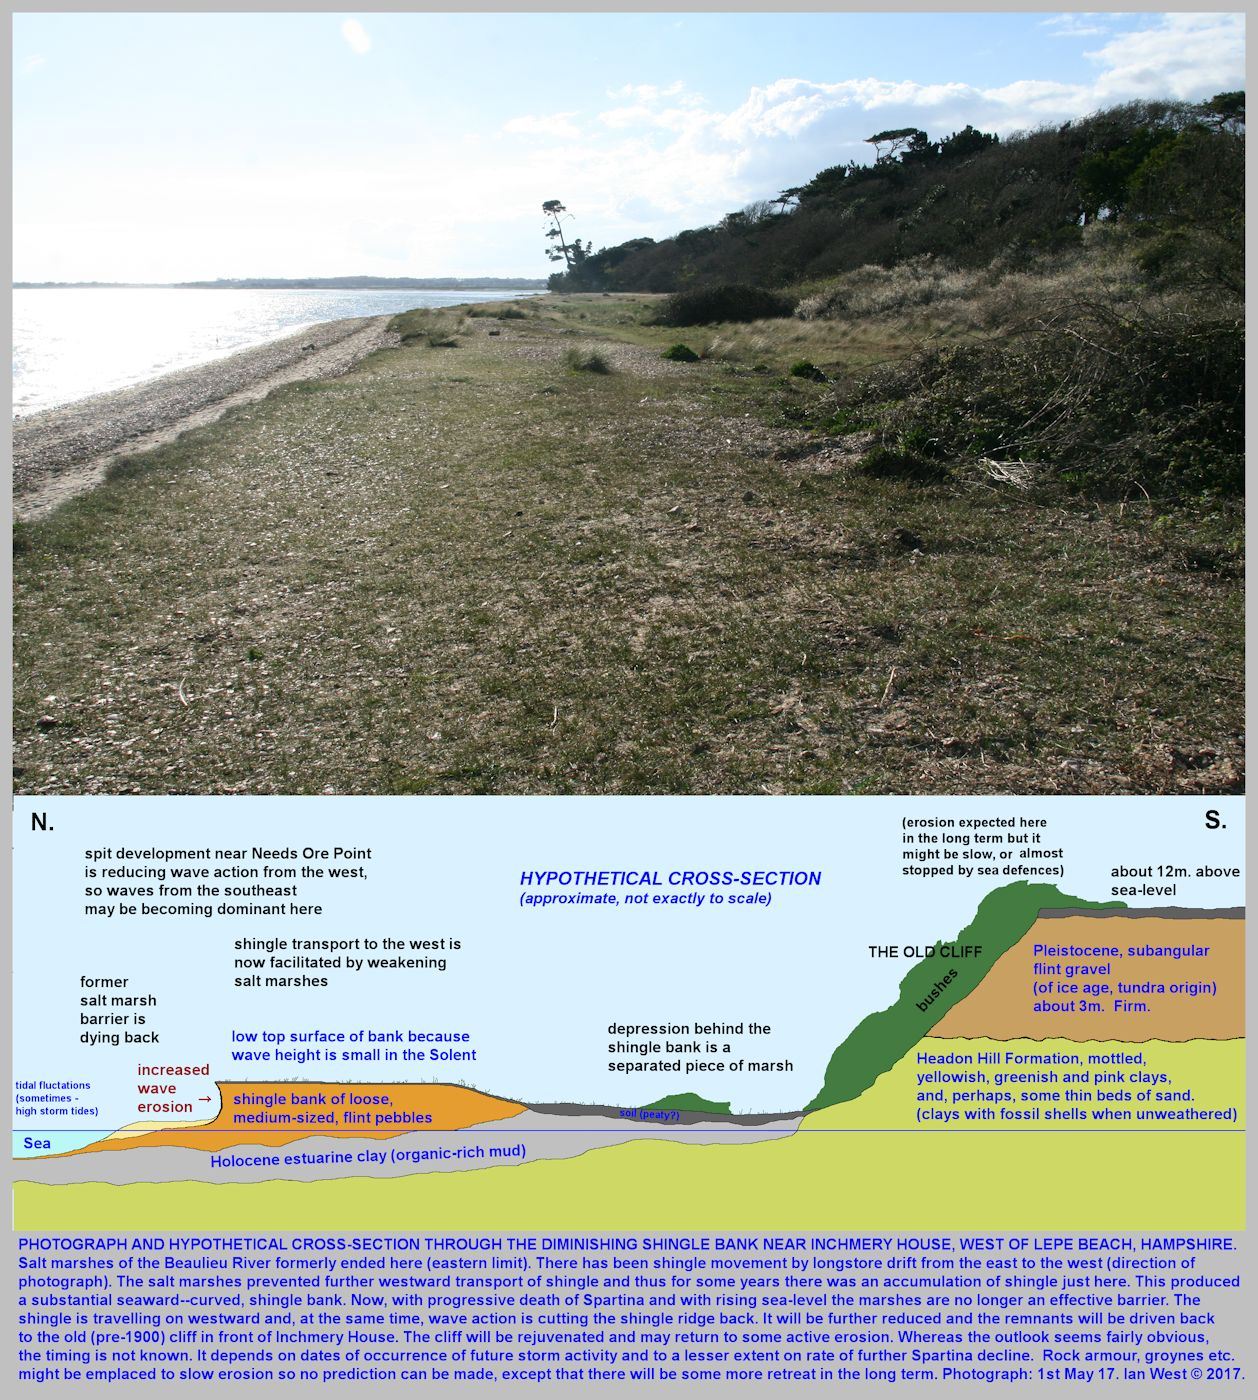 The remains of the curved shingle bank near Inchmery House, west of Lepe Beach, Hampshire in May 2017, and a hypothetical, explanatory, cross-section